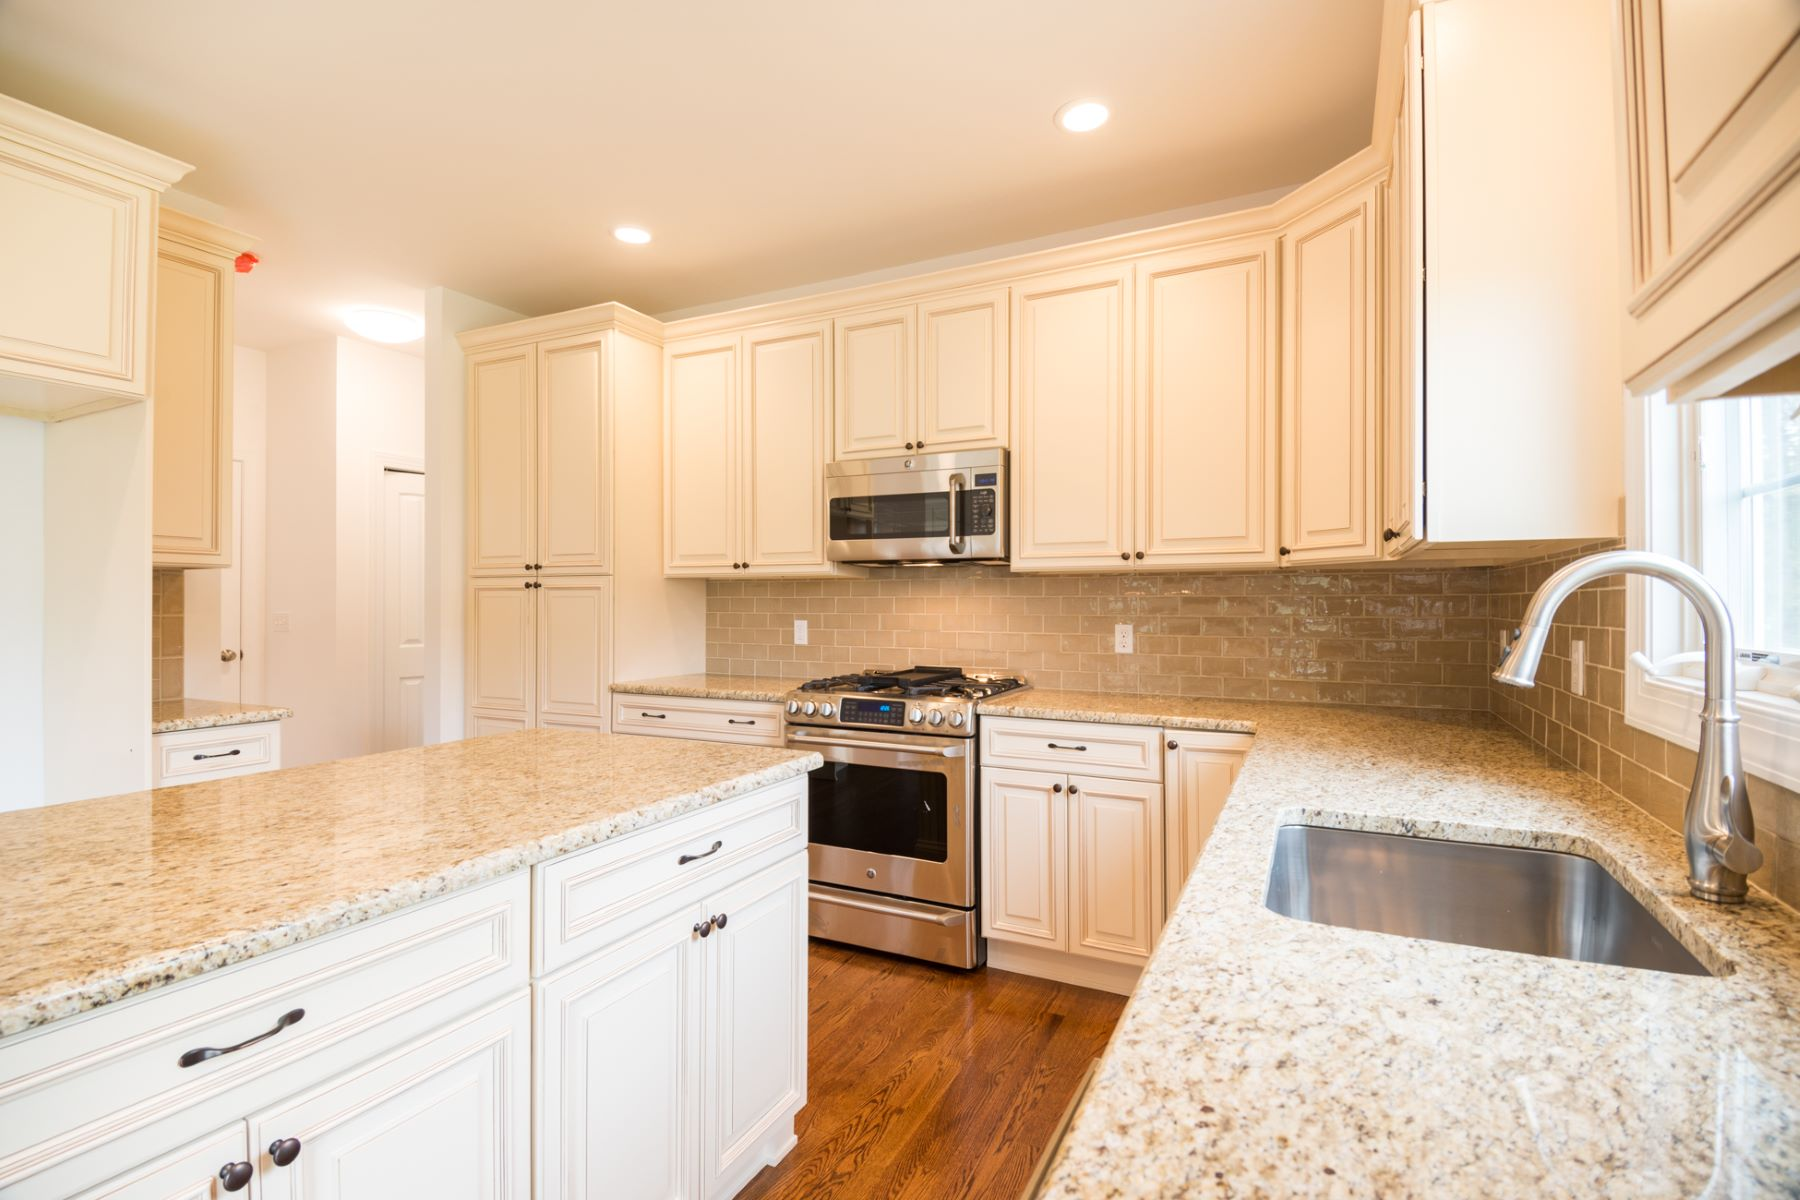 Additional photo for property listing at Lovely New Construction is the Best of All Worlds 33 Major Road South Brunswick, Nueva Jersey 08852 Estados Unidos